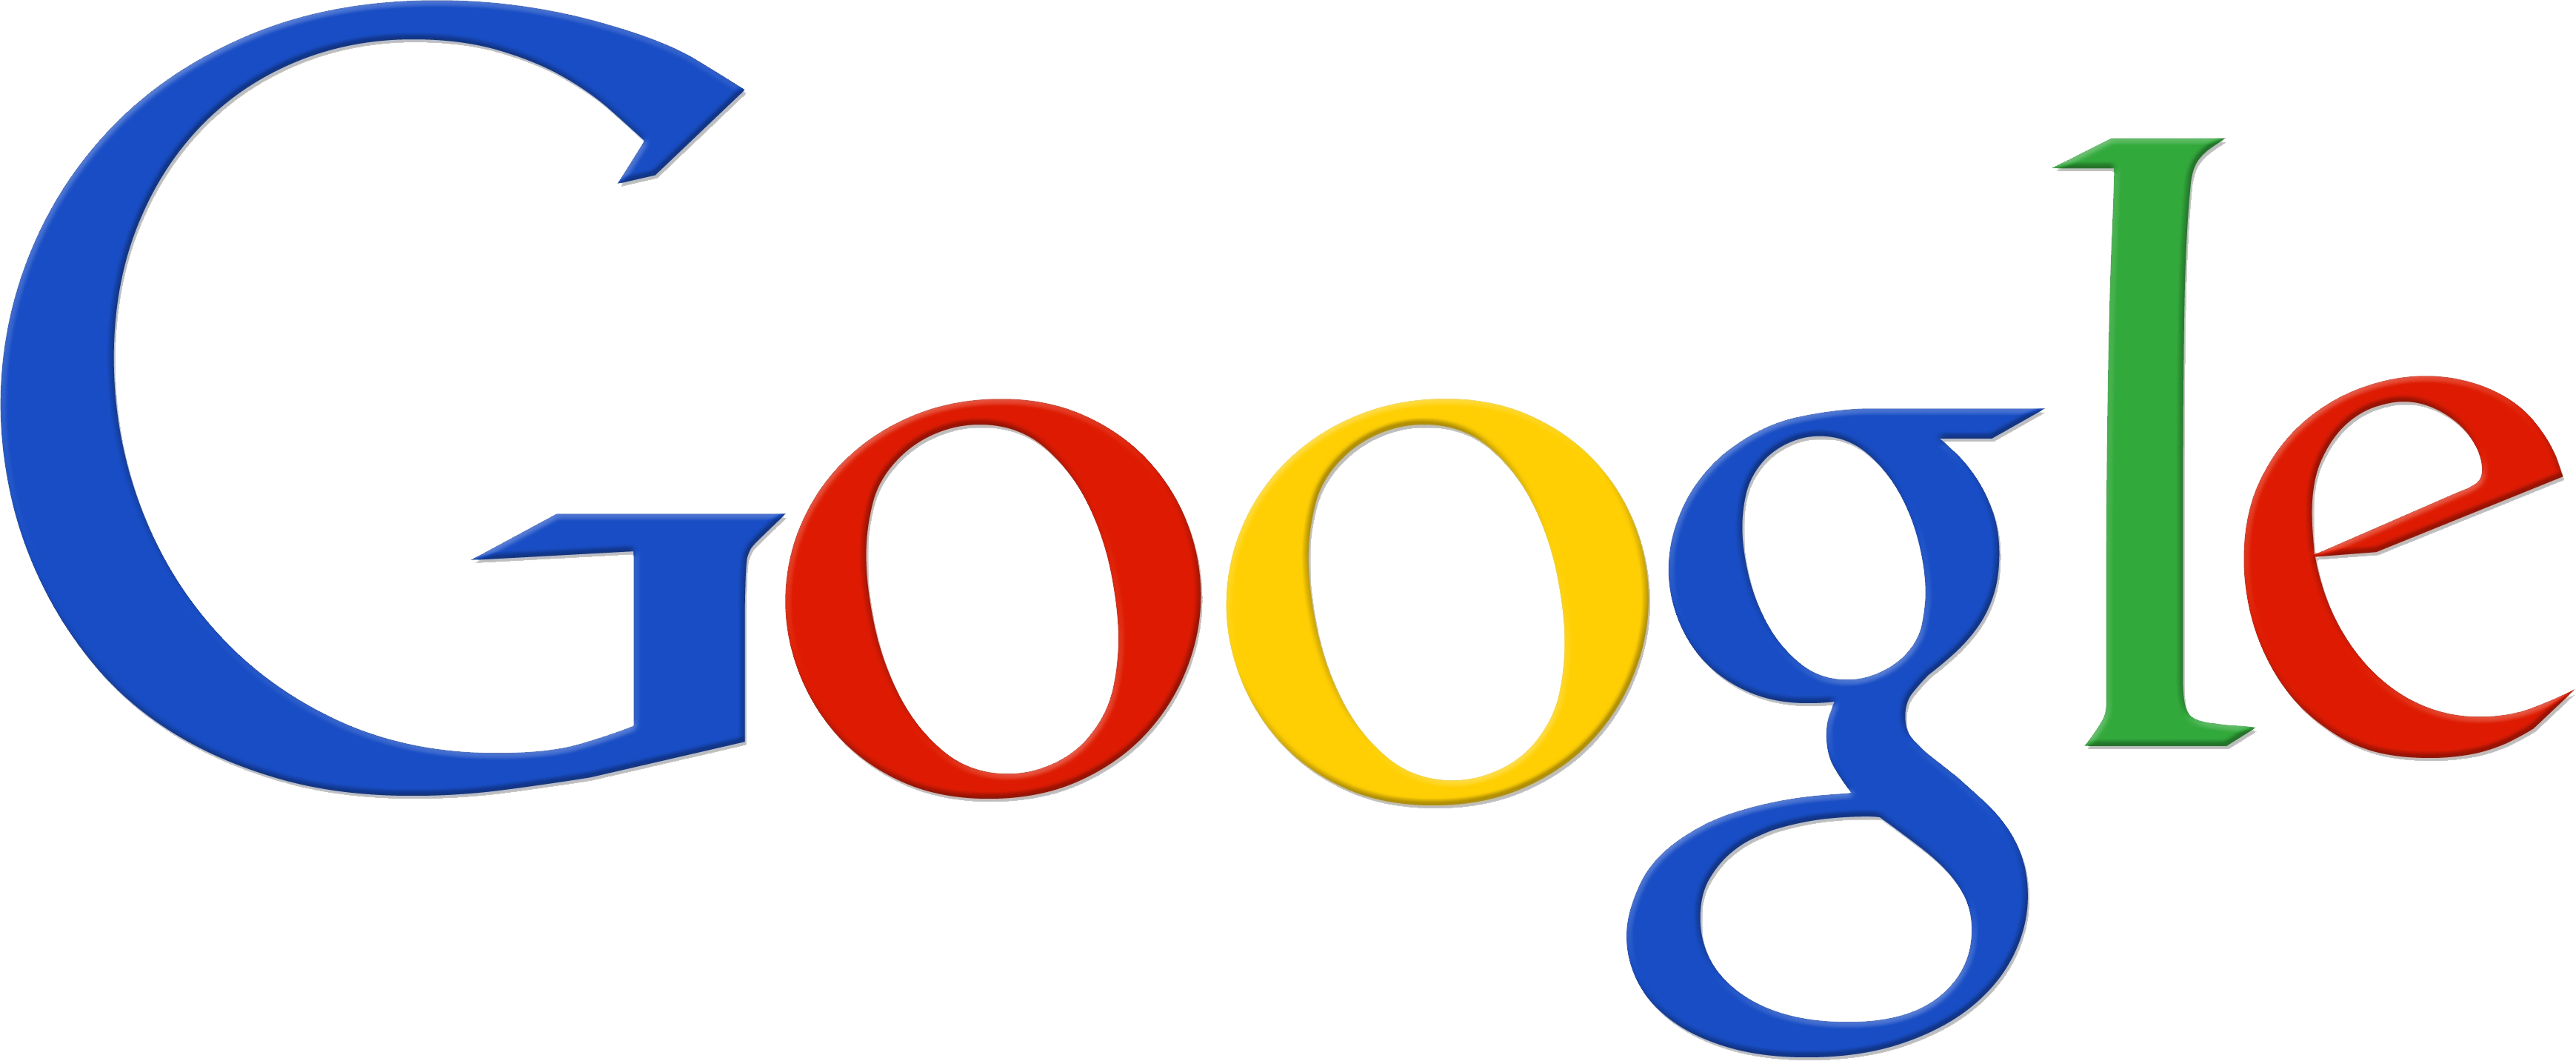 Images Logo Google Free Download PNG HD PNG Image